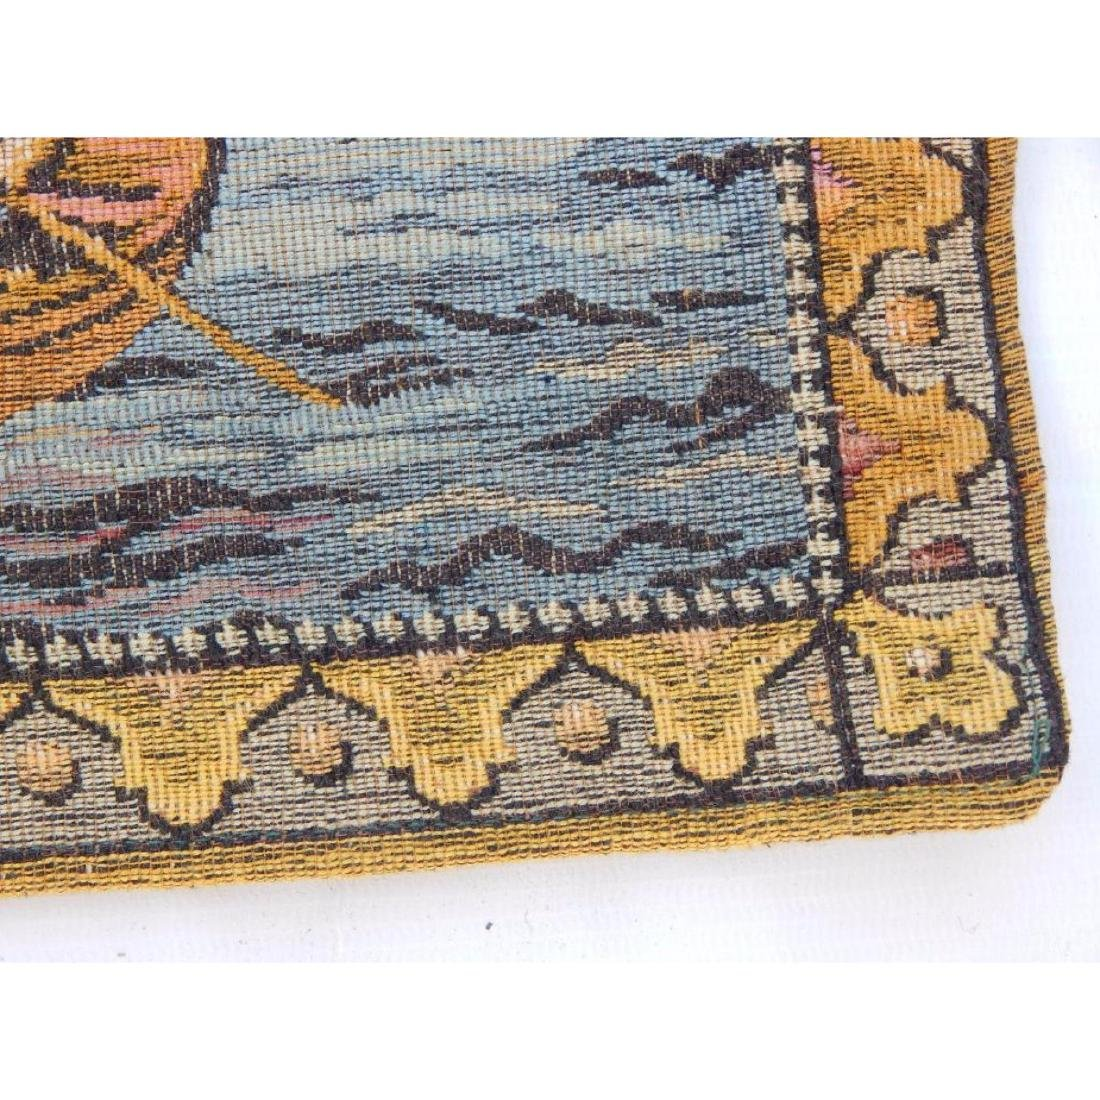 Vintage French Beautiful Tapestry Wall Hanging 58x83cm - 6